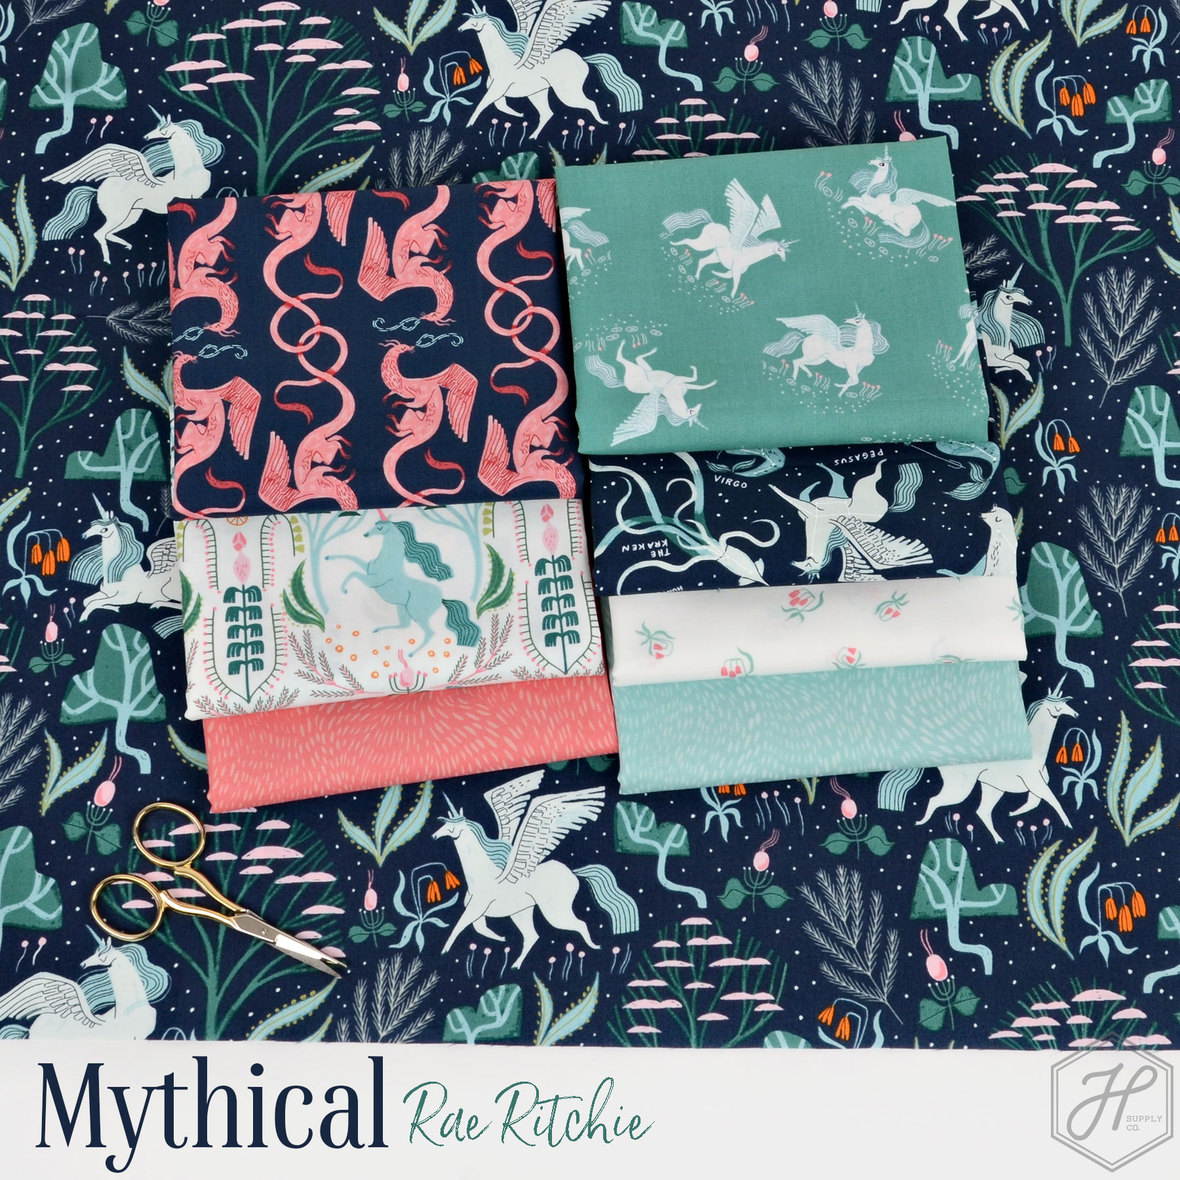 Mythical-Fabric-Rae-Ritchie-for-Dear-Stella-at-Hawthorne-Supply-Co